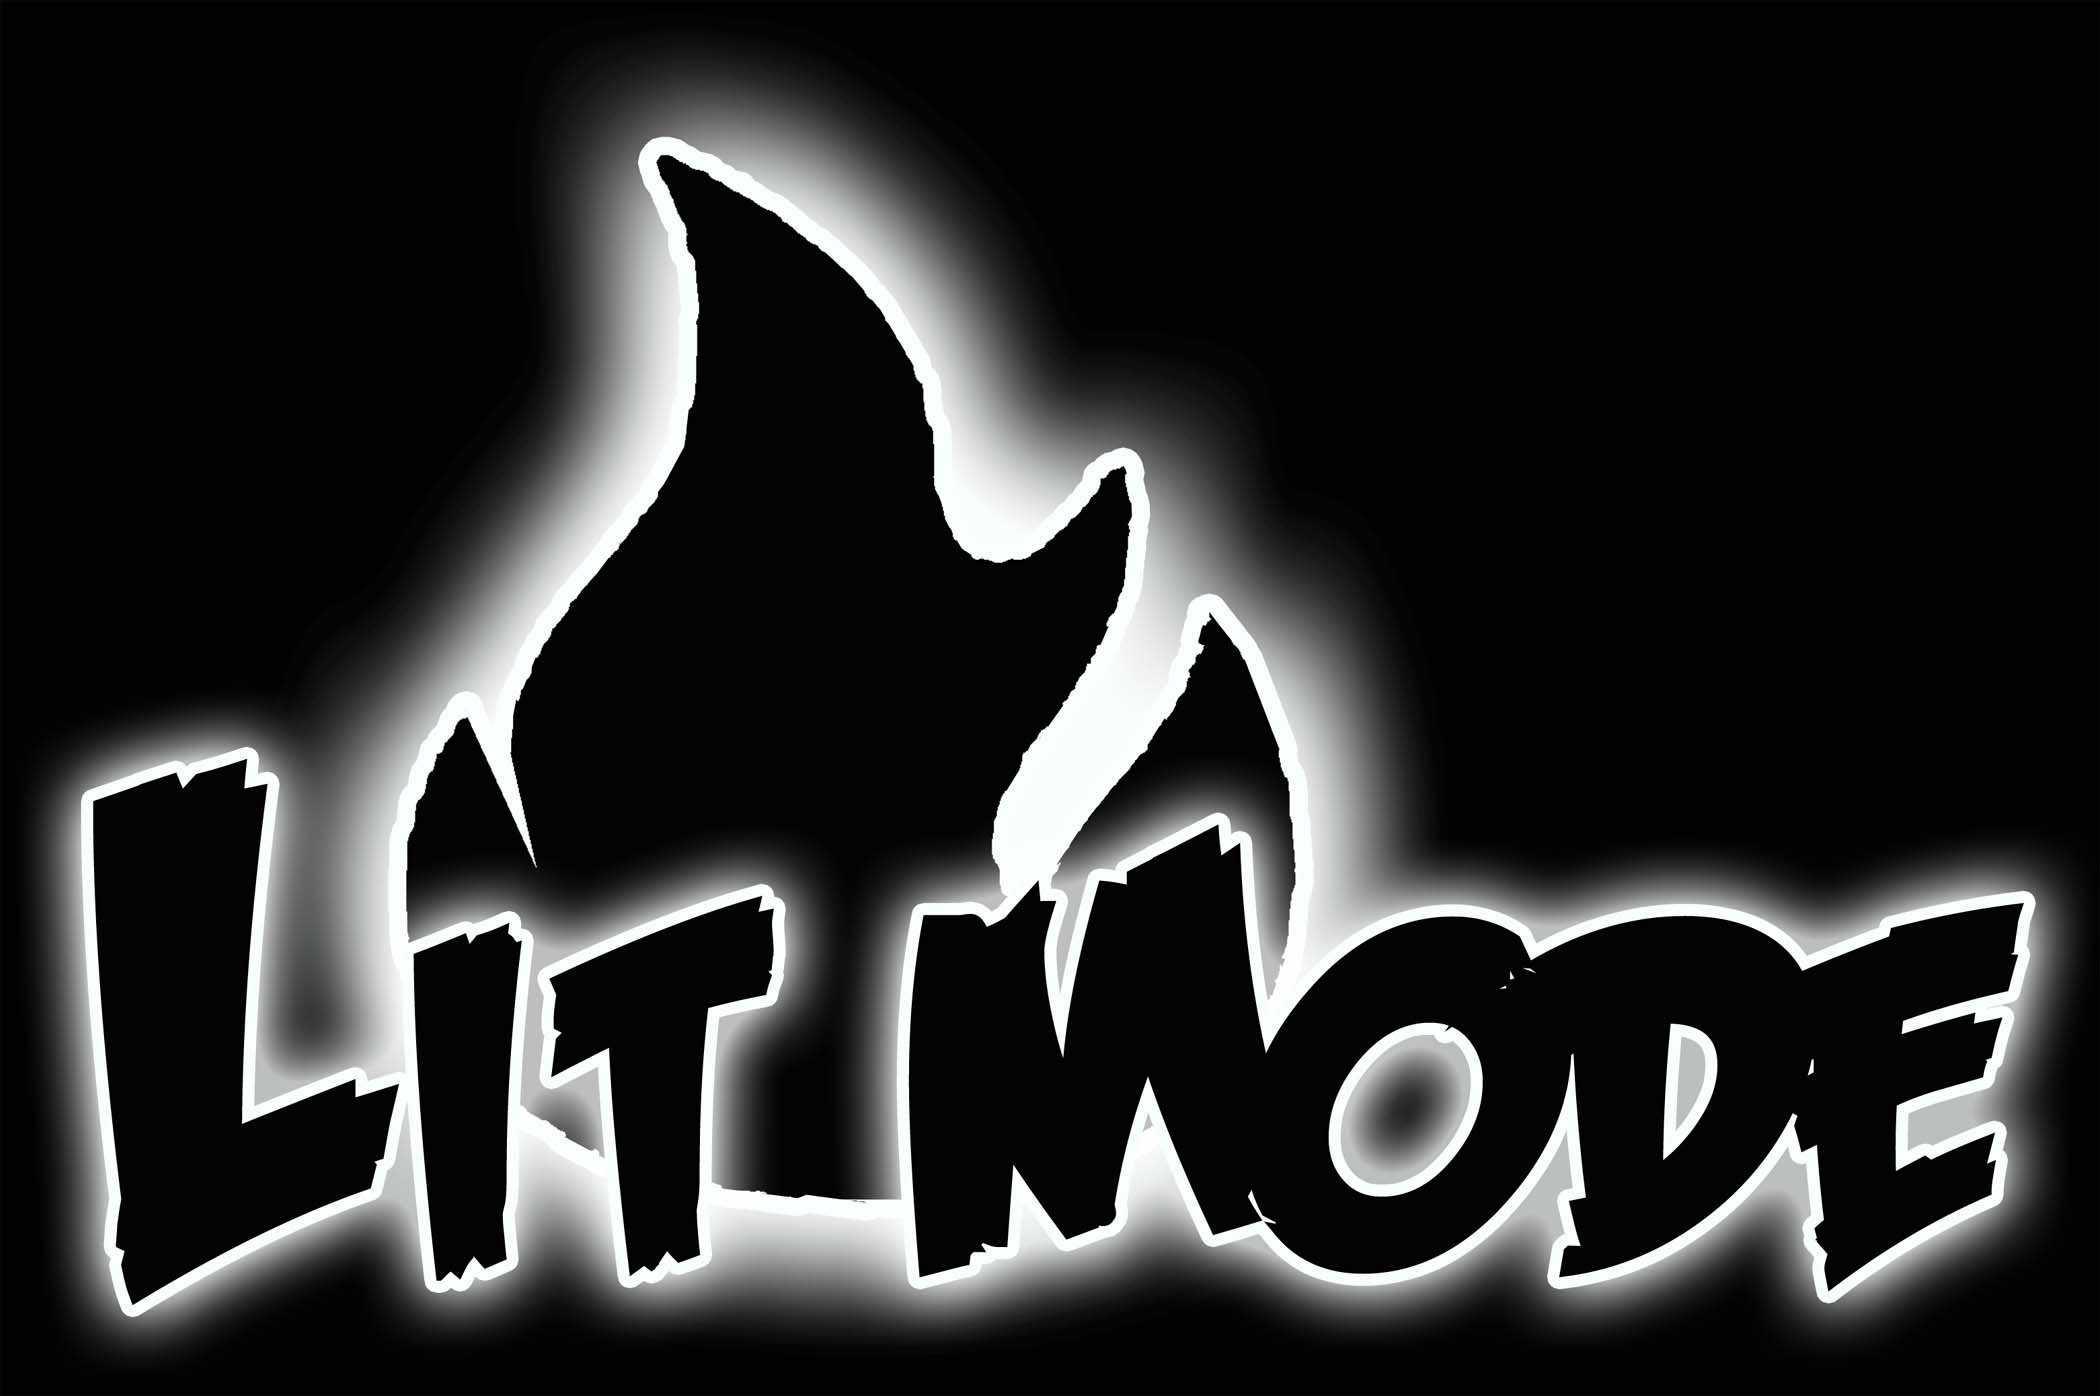 Lit Mode, the Clothing Brand that Bridges the Gap Between Hip Hop, Anime, Comic Books.